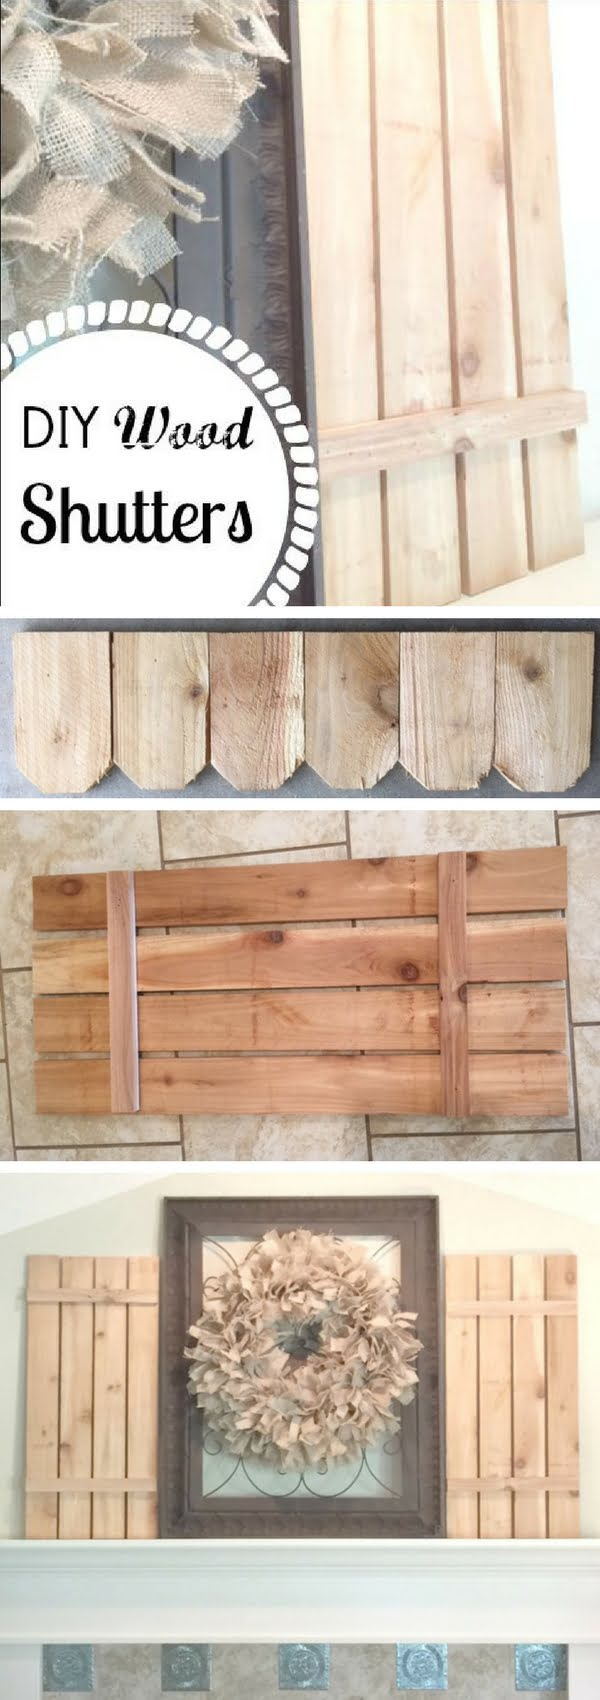 Check out how to make DIY wood shutters